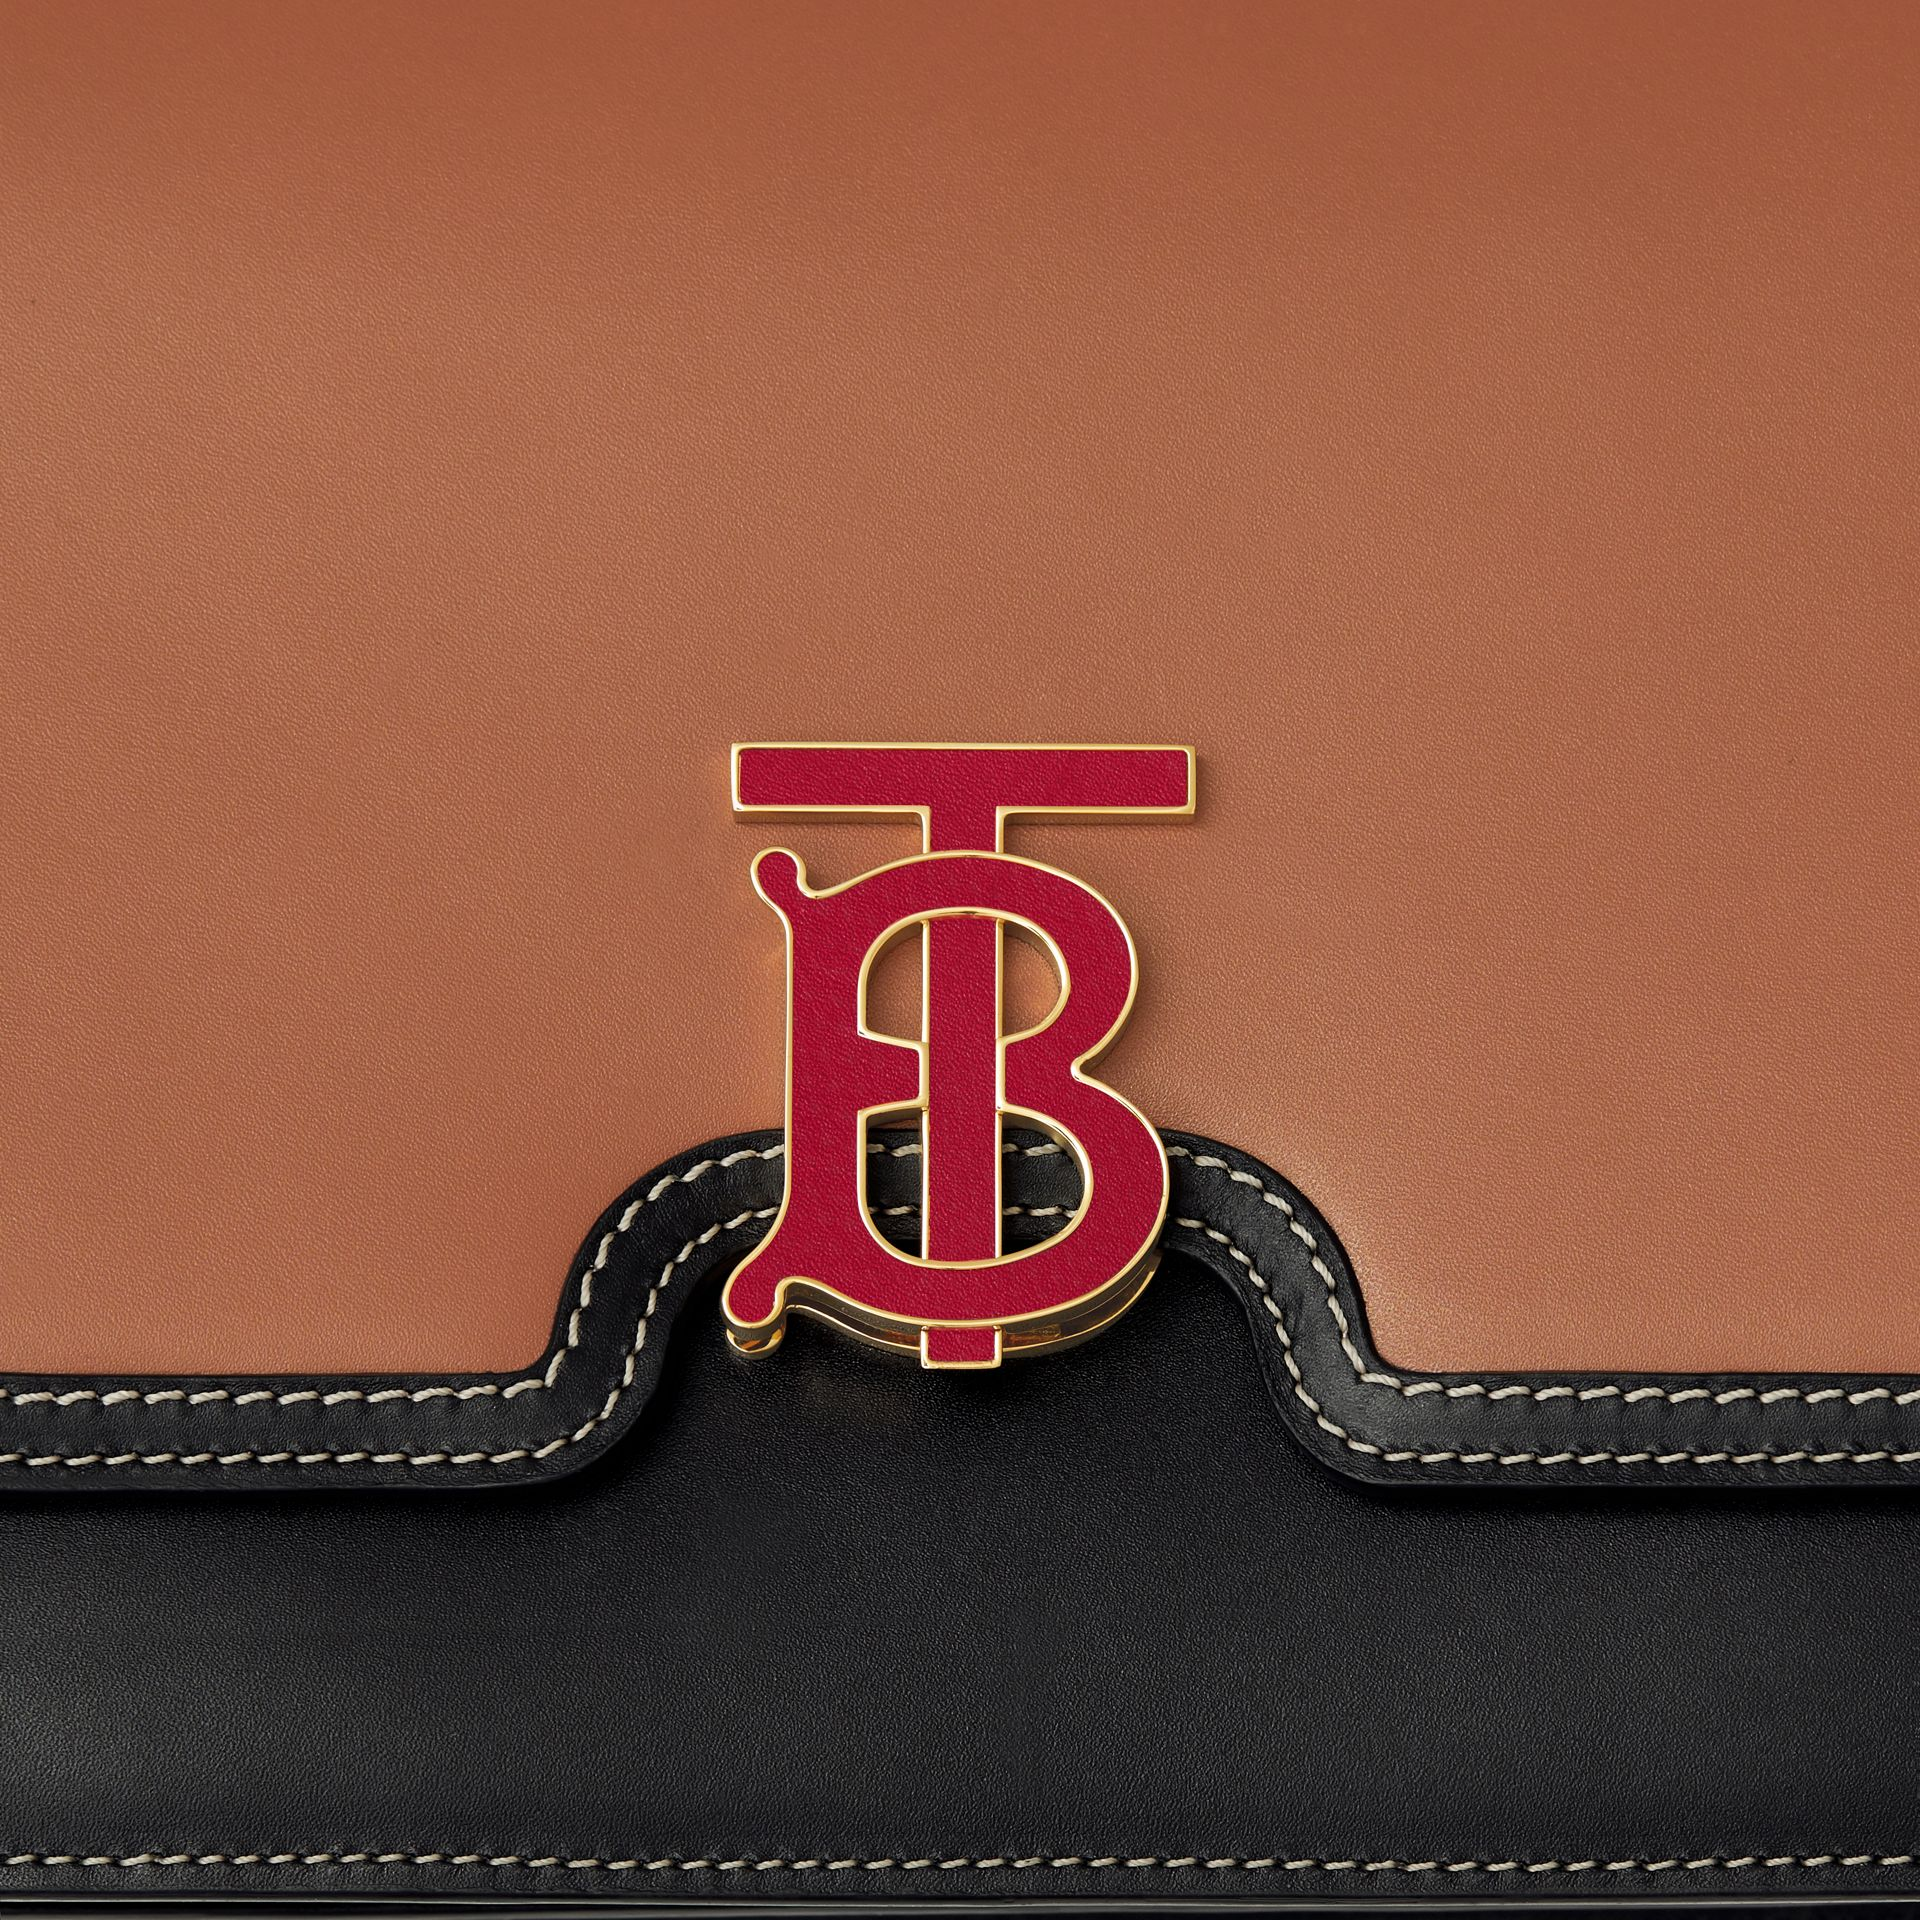 Medium Two-tone Leather TB Bag in Malt Brown/black - Women | Burberry Australia - gallery image 1